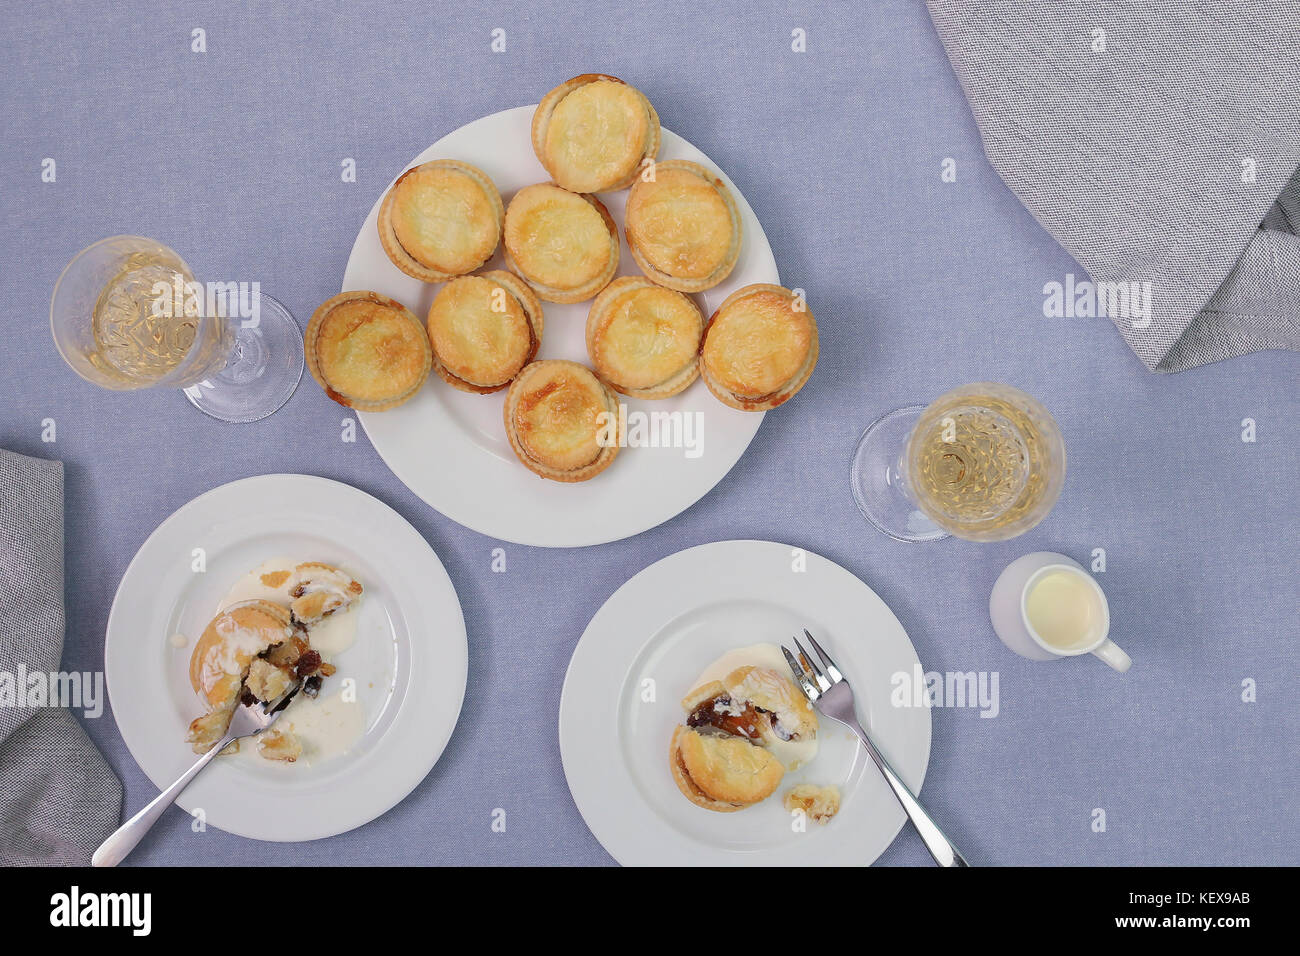 Christmas food, mince pies with champagne. - Stock Image